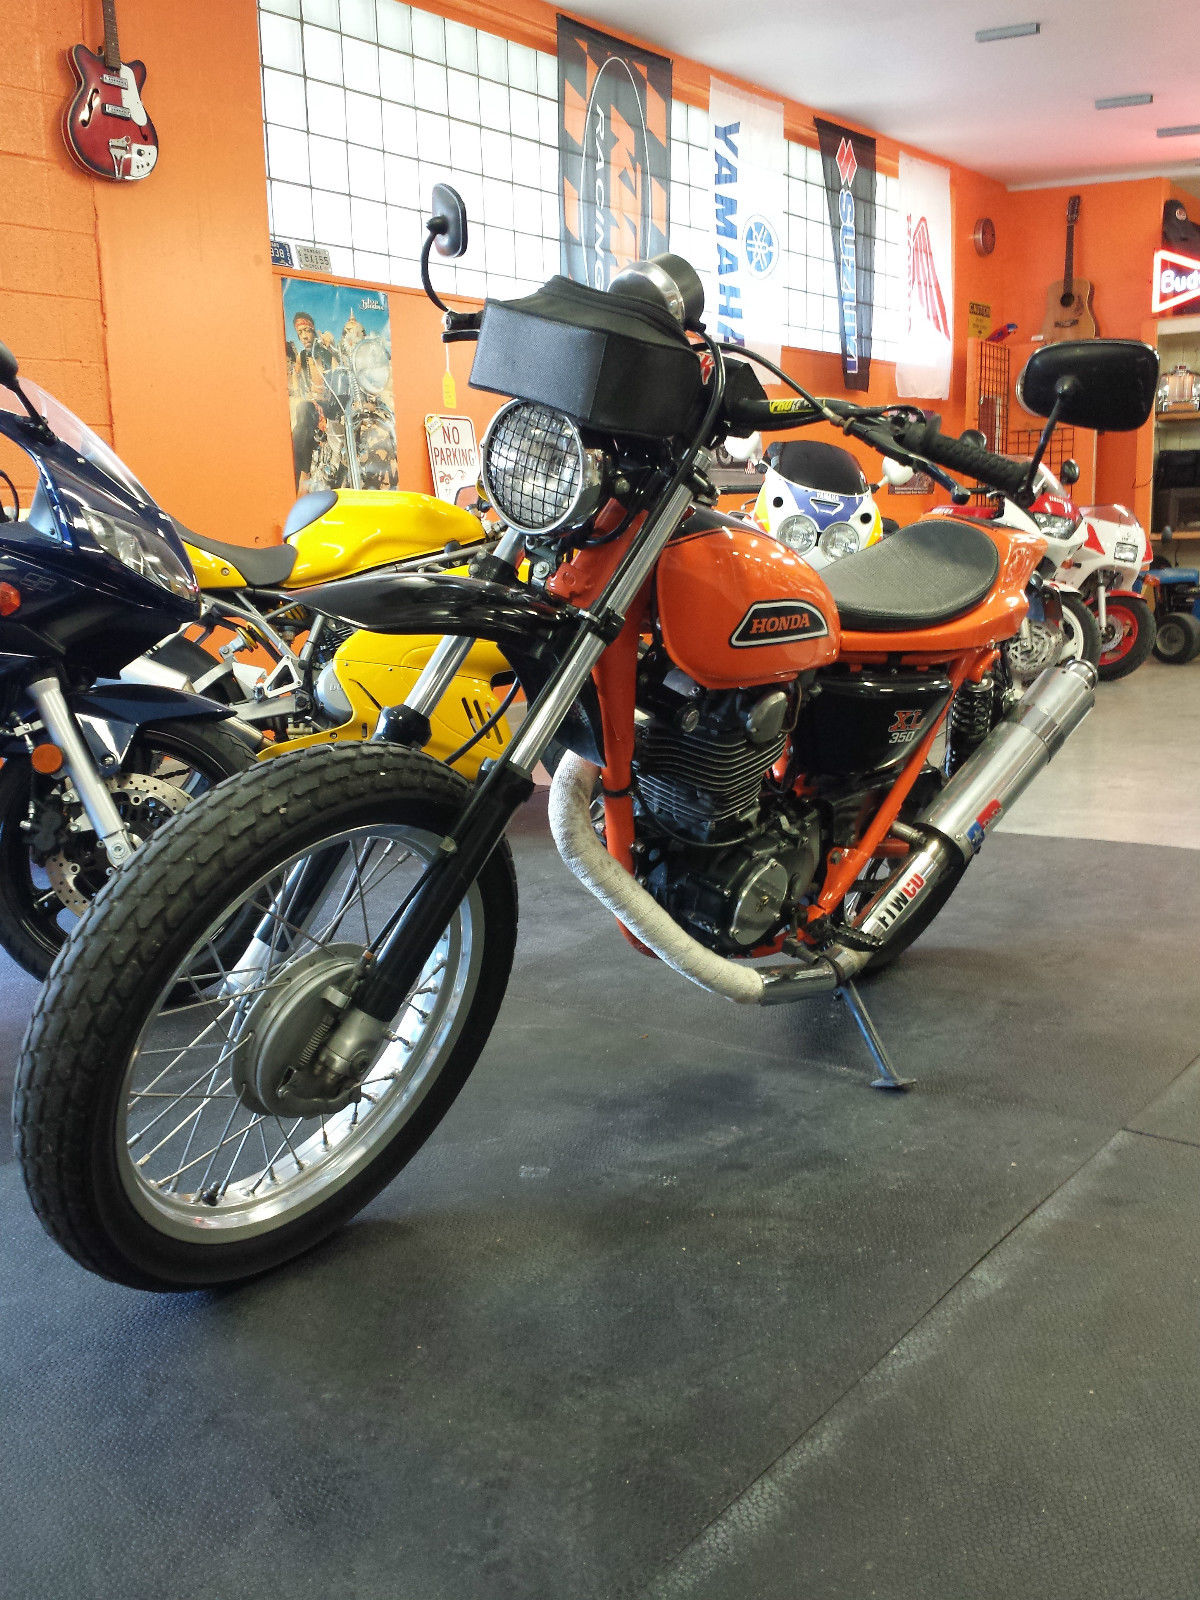 Honda Xl350 Tracker Images Of Home Design Wiring Diagram Vintage Restored 1974 Street Flat With Title